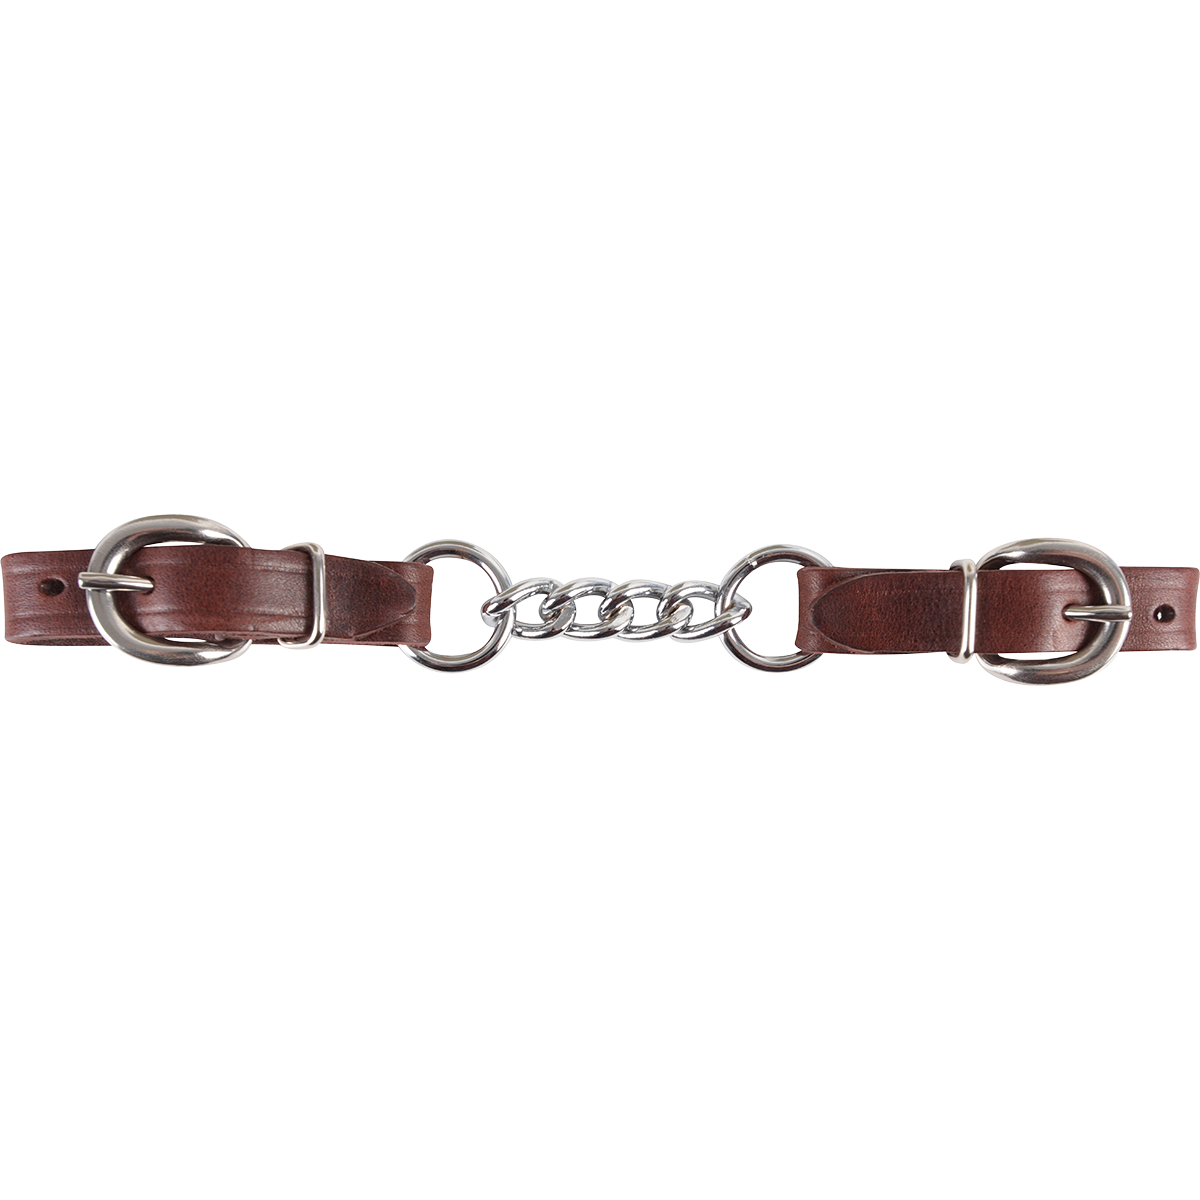 Martin Saddlery 4 Link Latigo Leather Curb Strap Tack - Bits, Spurs & Curbs - Curbs Martin Saddlery Teskeys